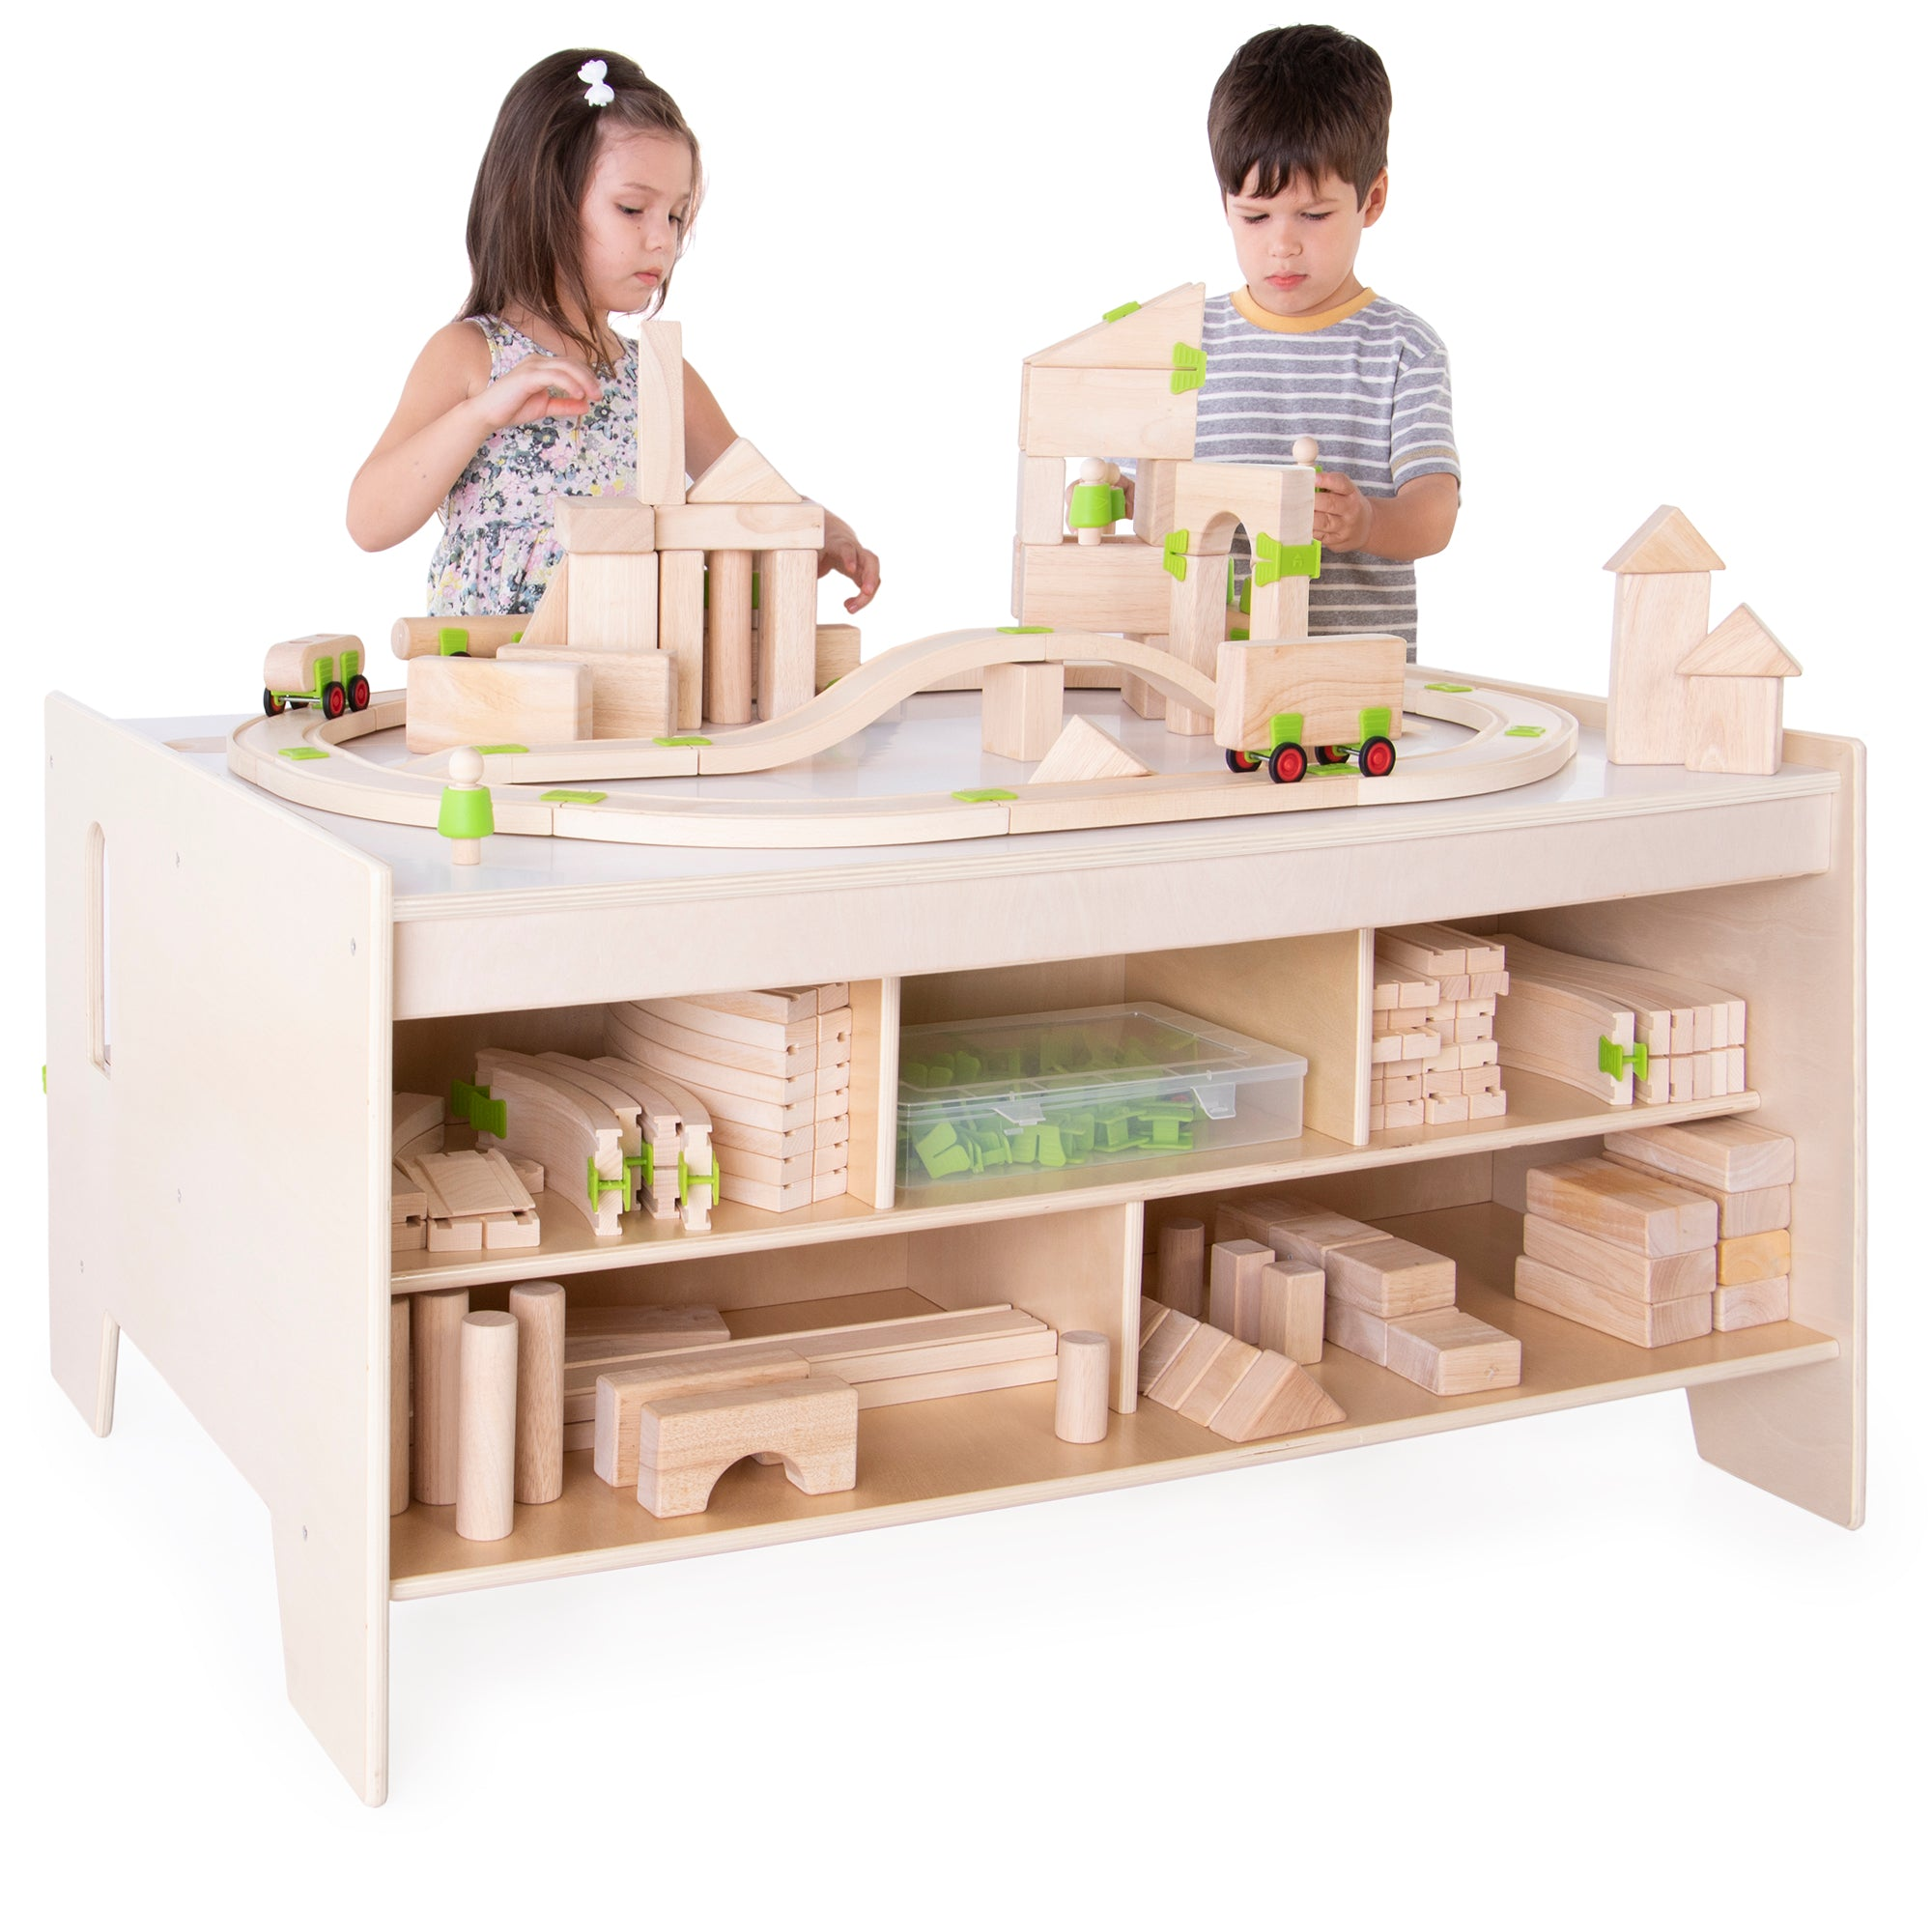 Guidecraft Block Science Table